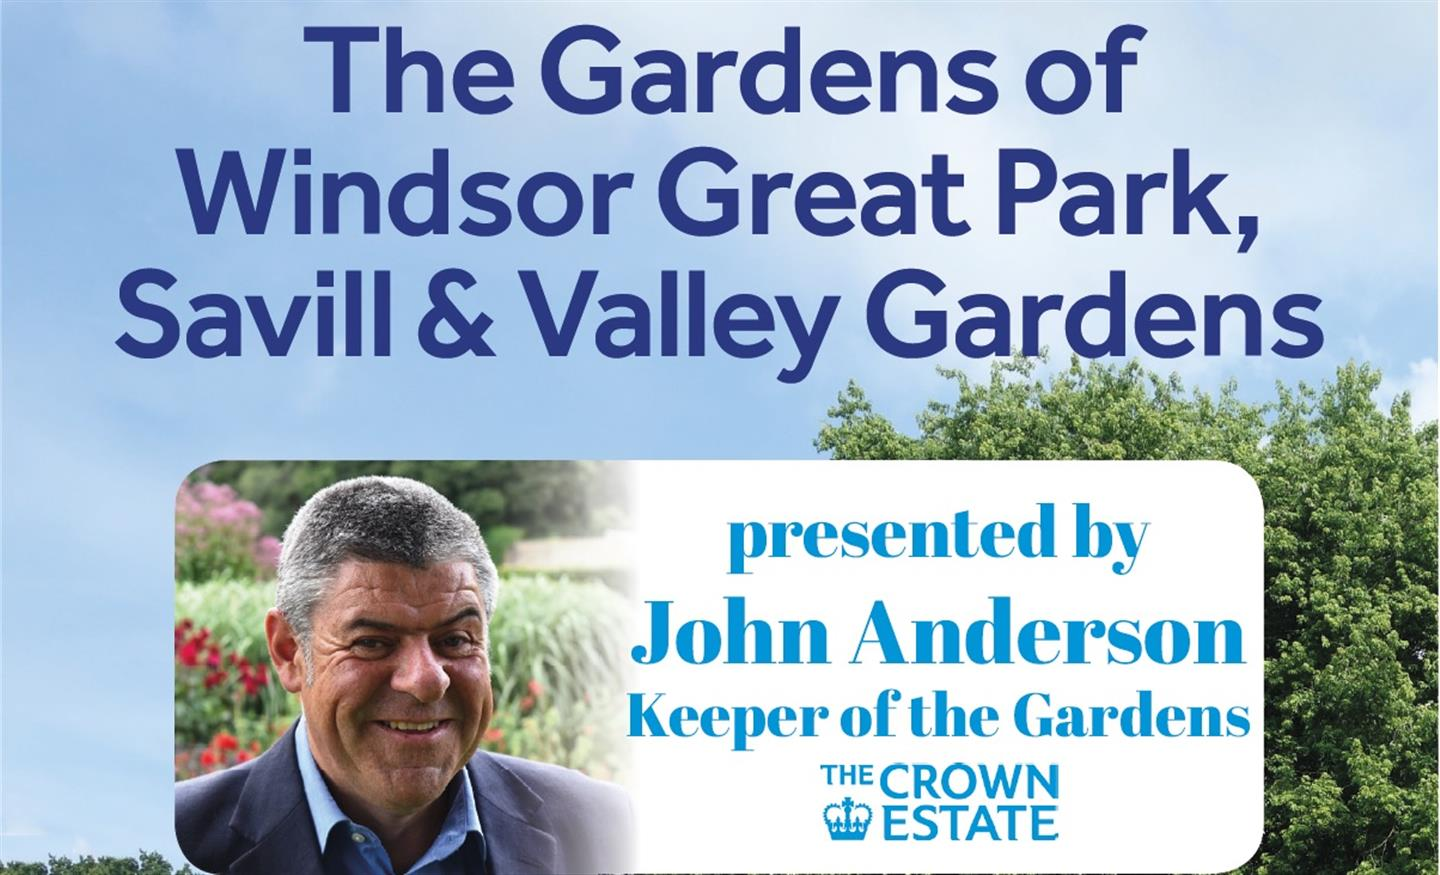 The Horticultural Lecture Of The Year Association Presents